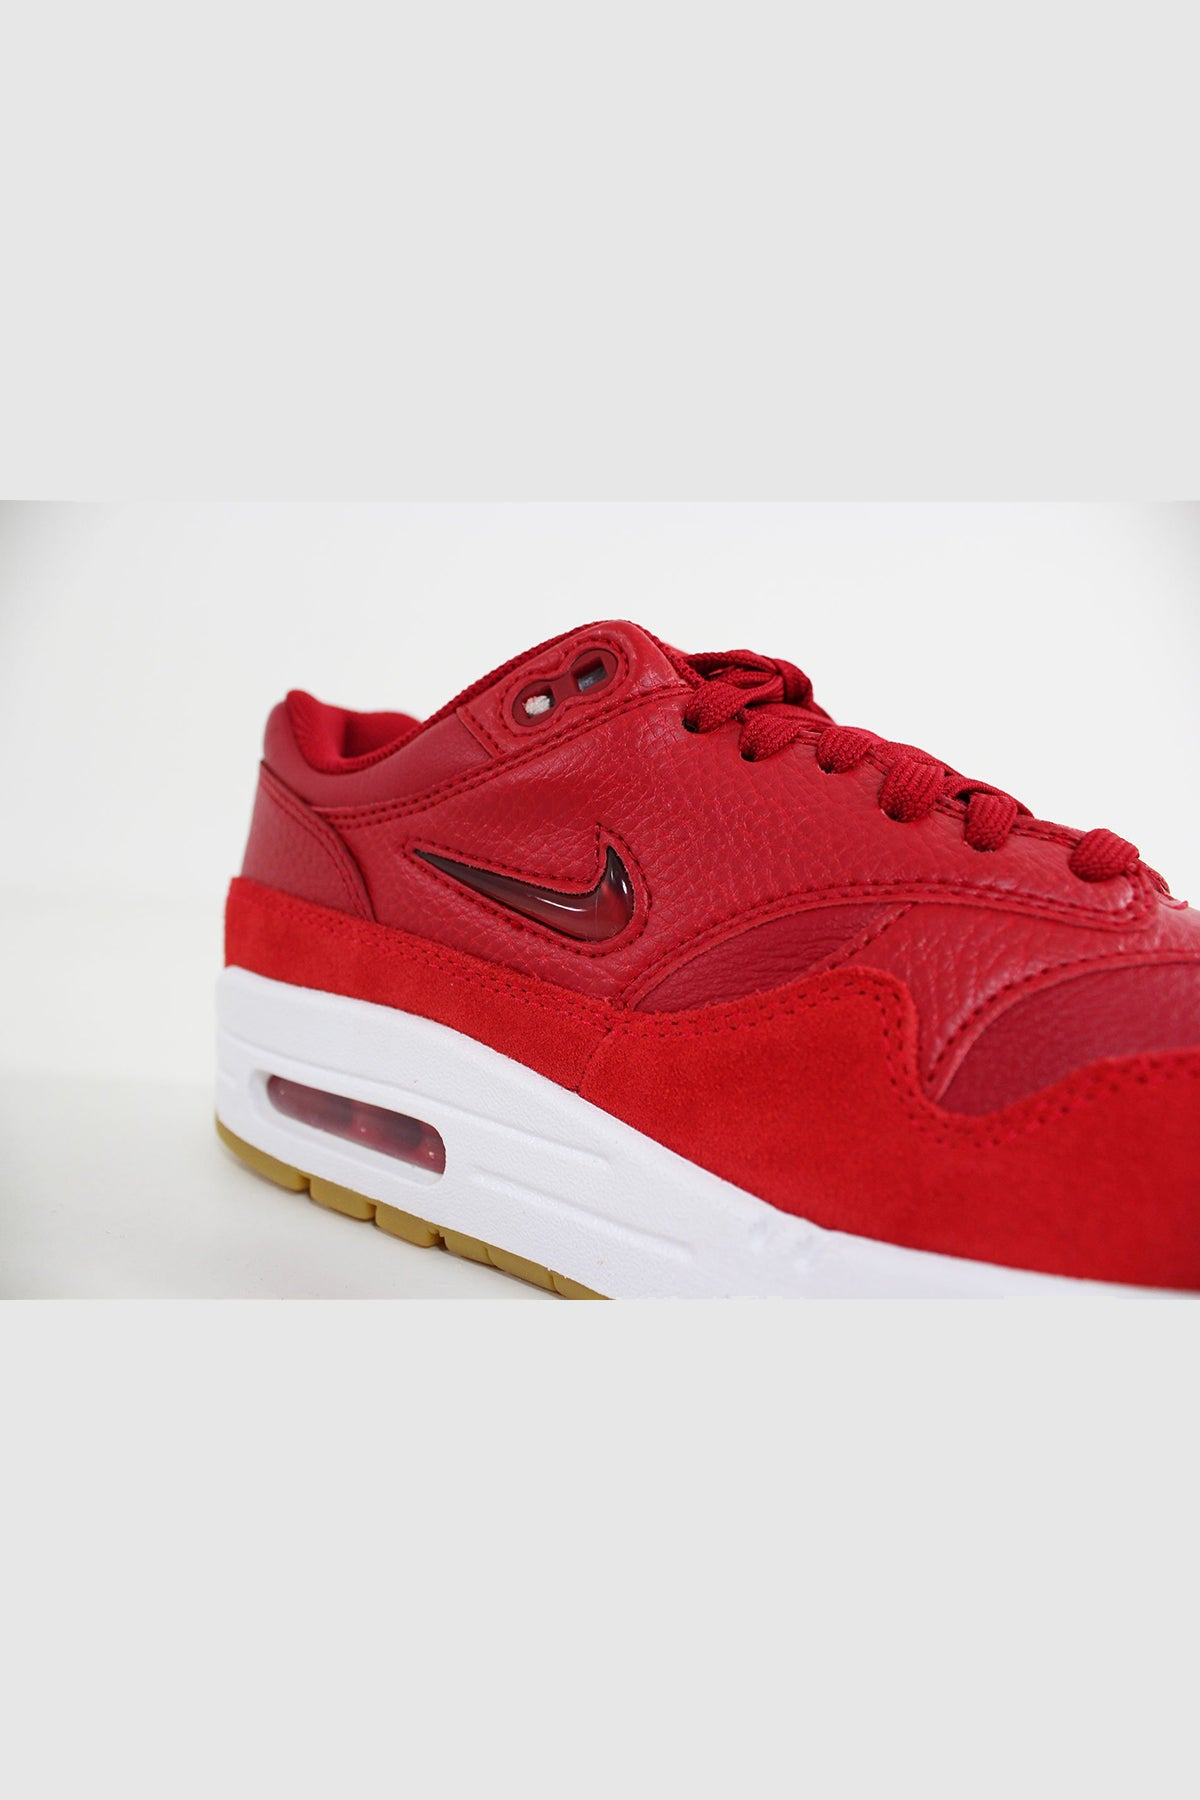 Nike - Air Max 1 Premium Women (Gym Red/ Gym Red - Speed Red) AA0512-602